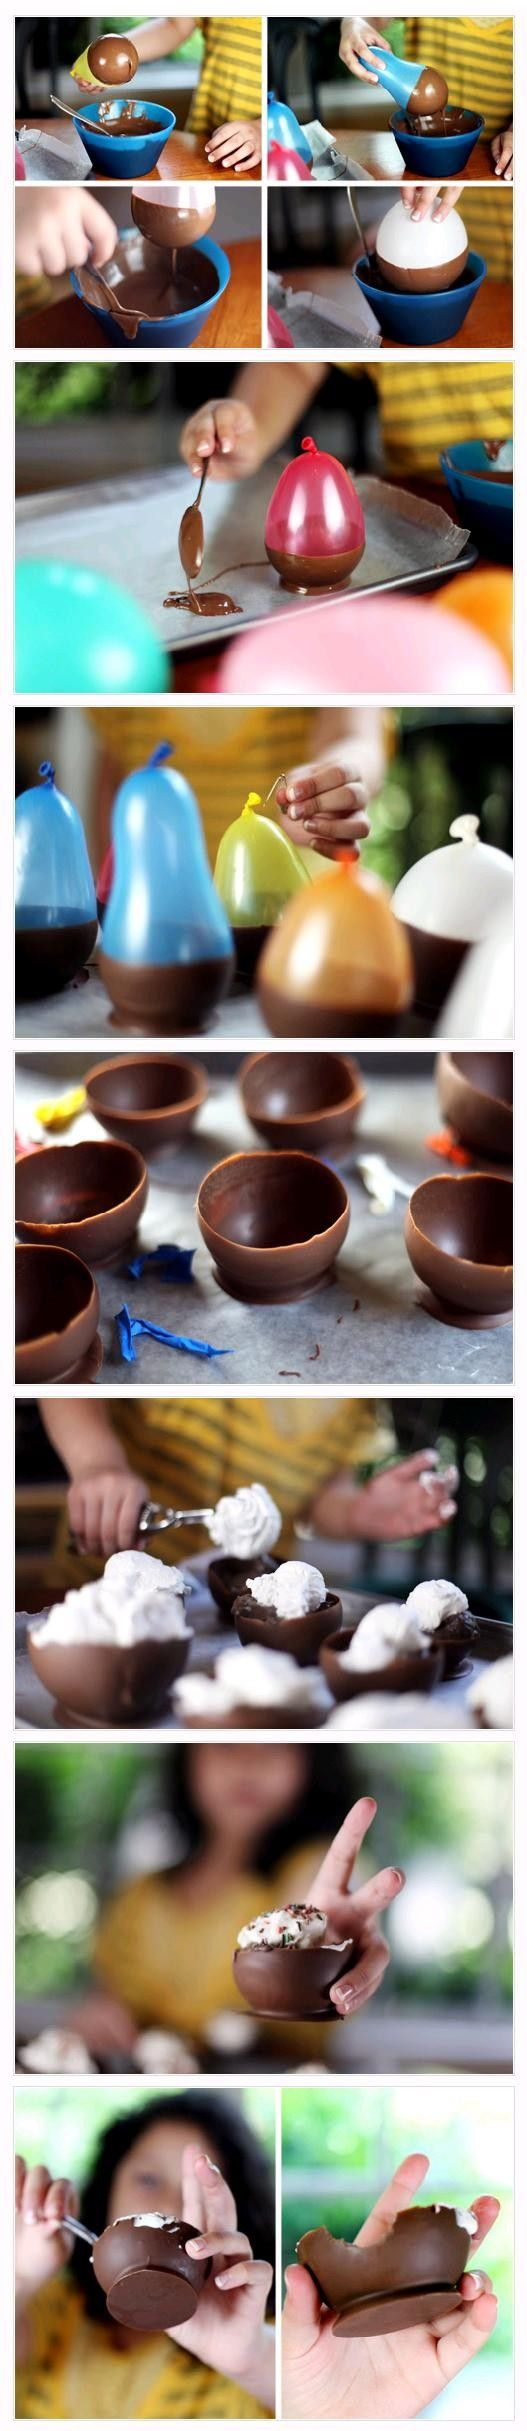 bowls de chocolate